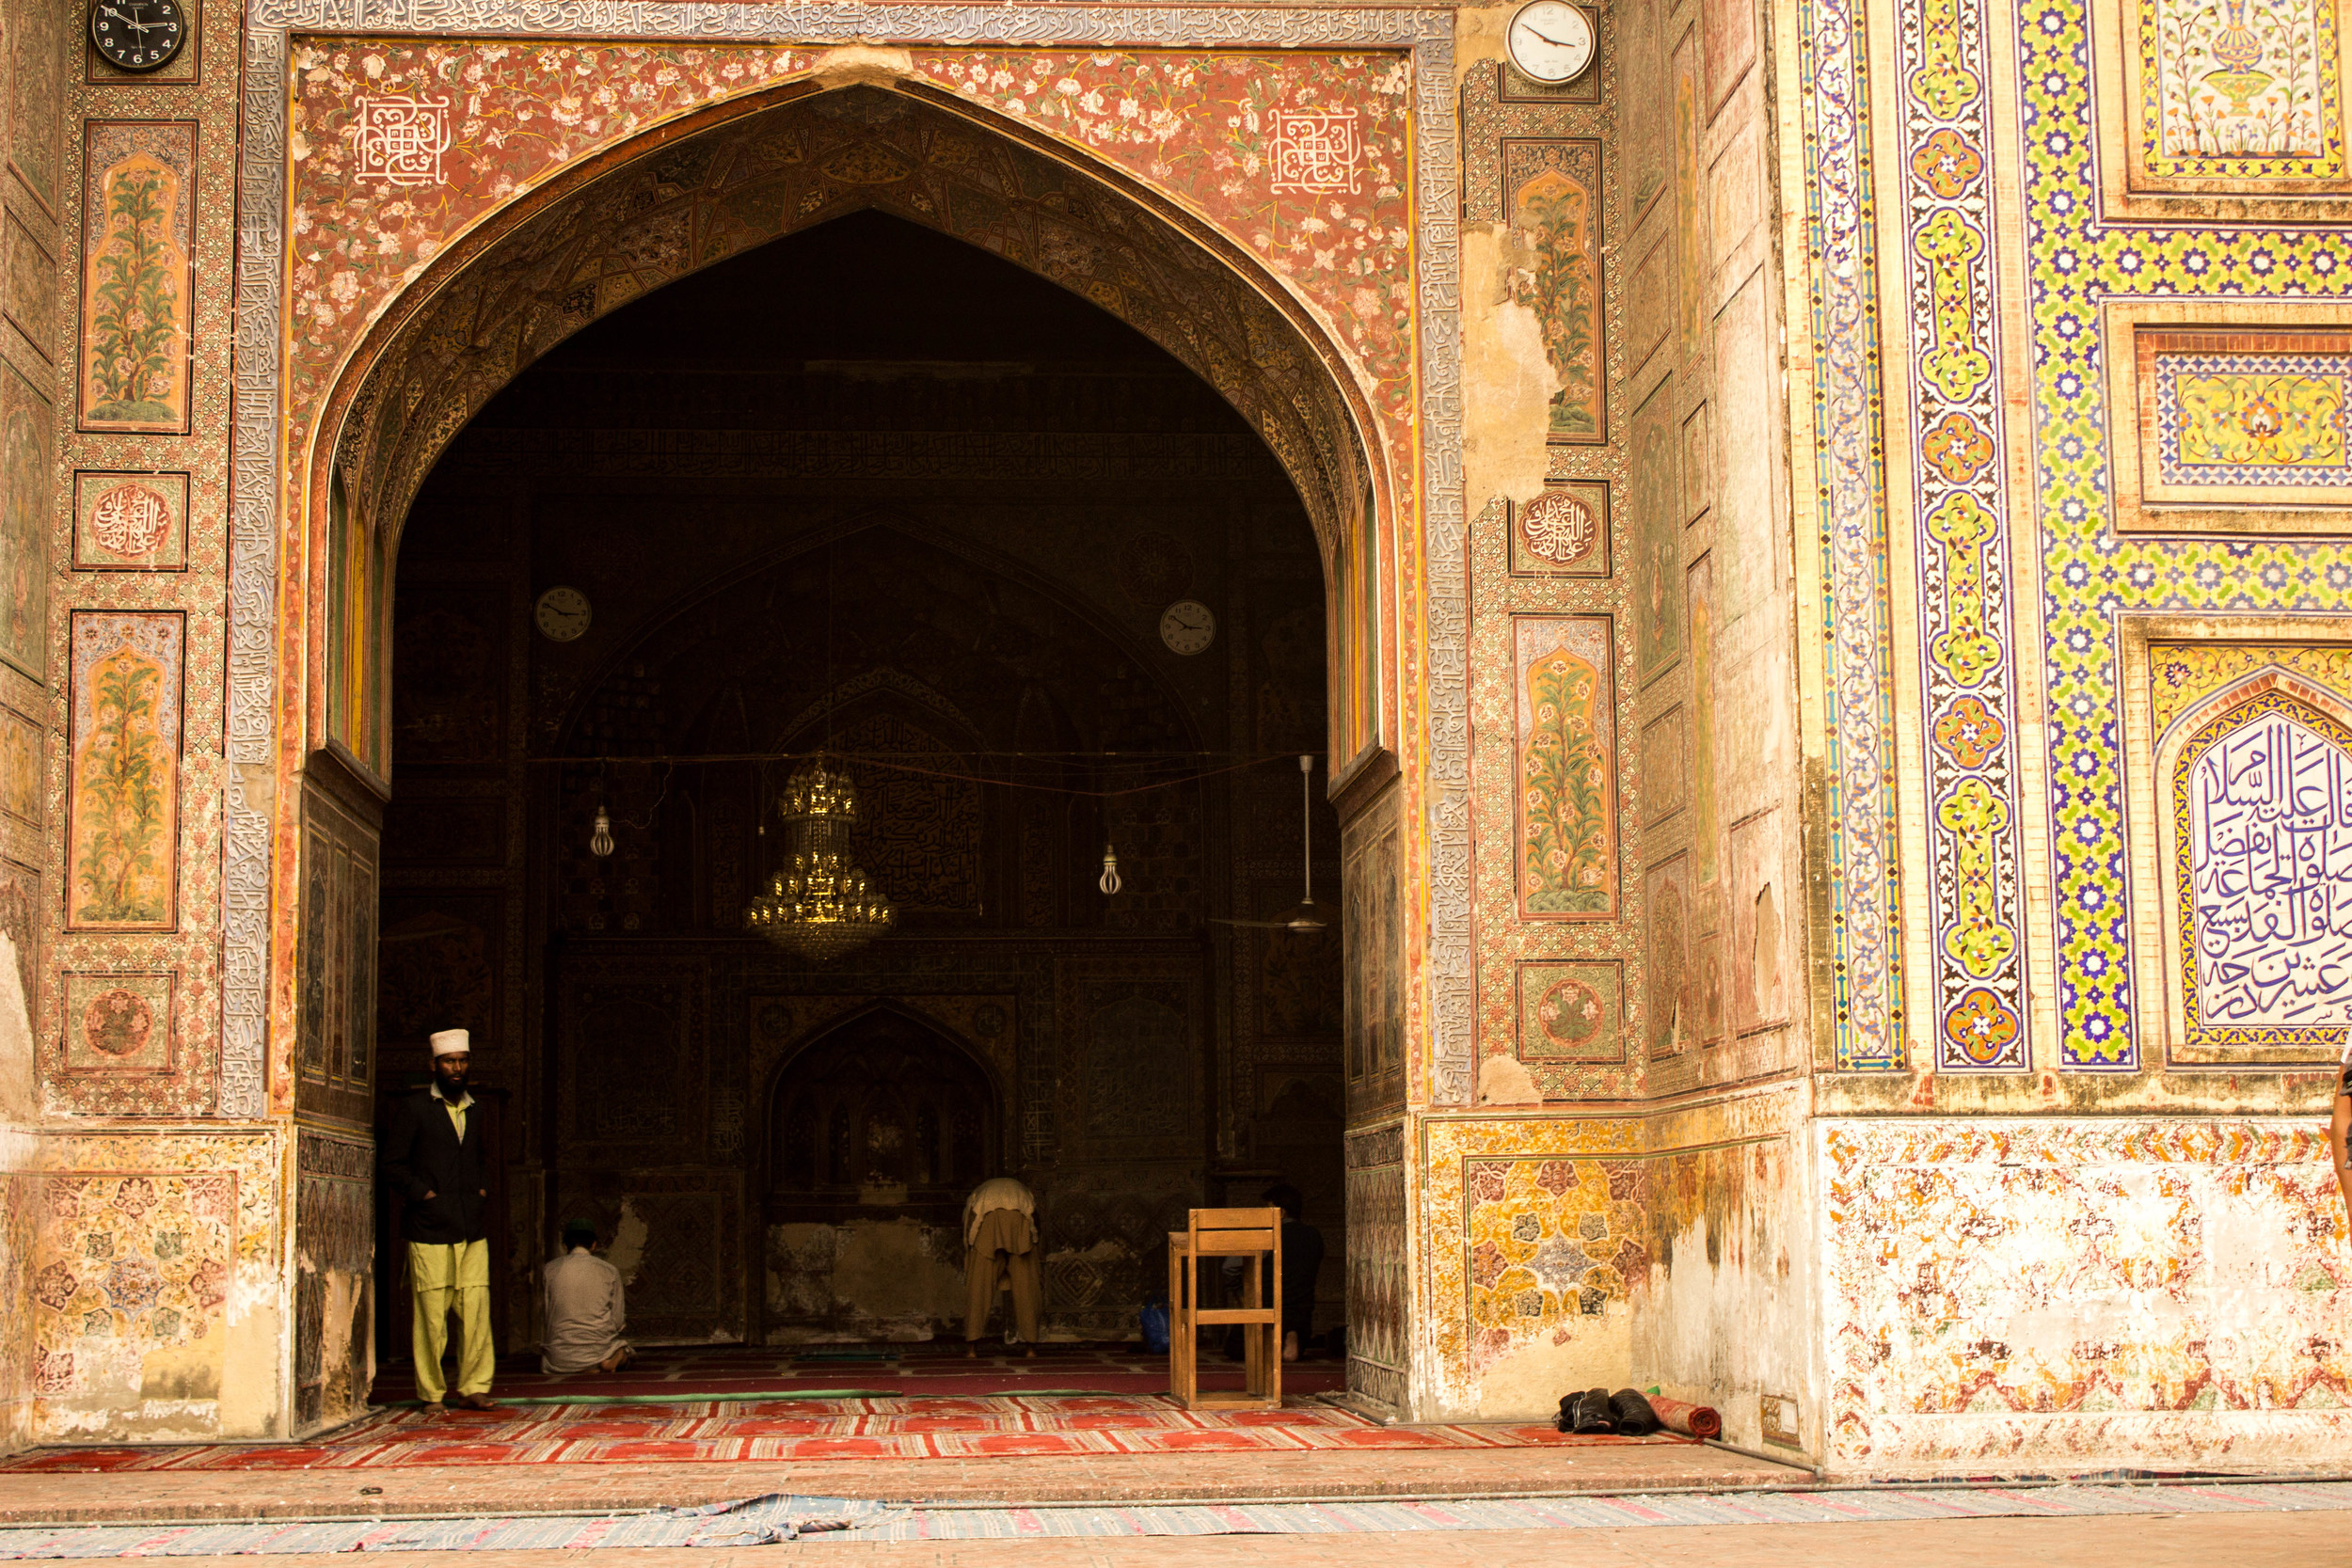 The Wazir Khan Masjid is known for its  faience tile work, seen throughout the masjid (mosque) complex.